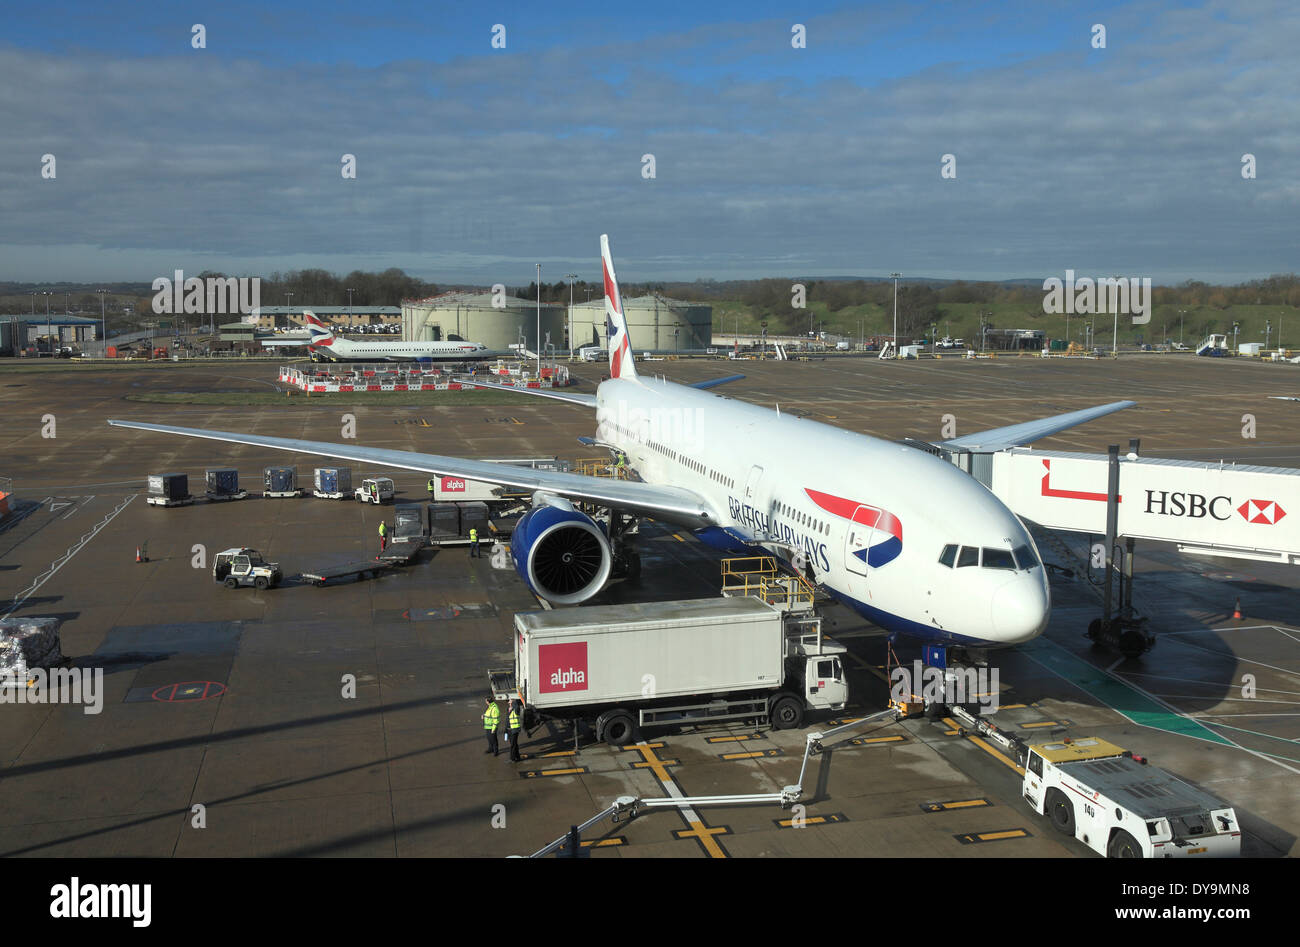 British Airways Boeing loading Cargo and supplies at Gatwick Airport - Stock Image